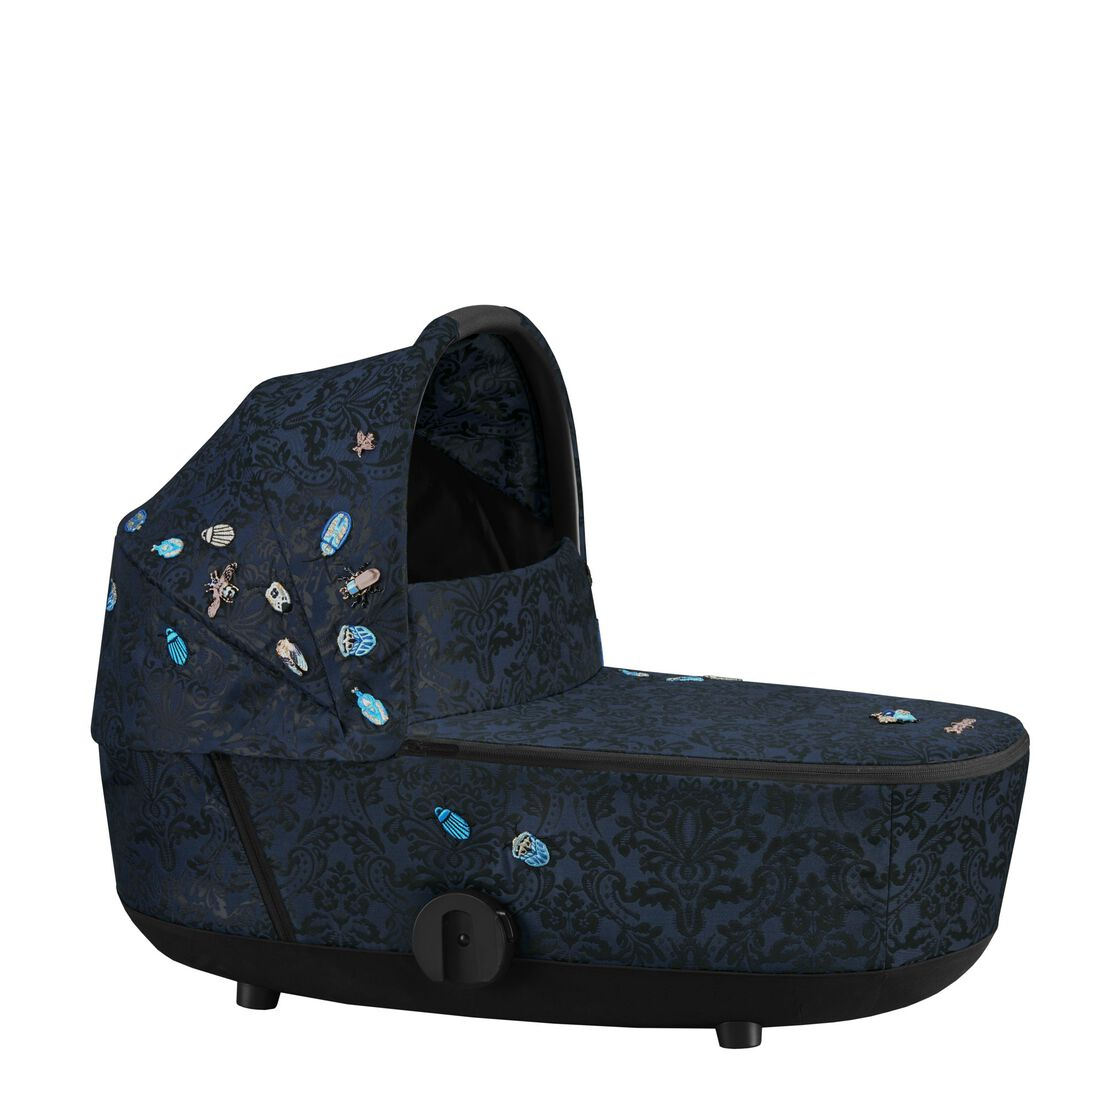 CYBEX Mios Lux Carry Cot - Jewels of Nature in Jewels of Nature large image number 1